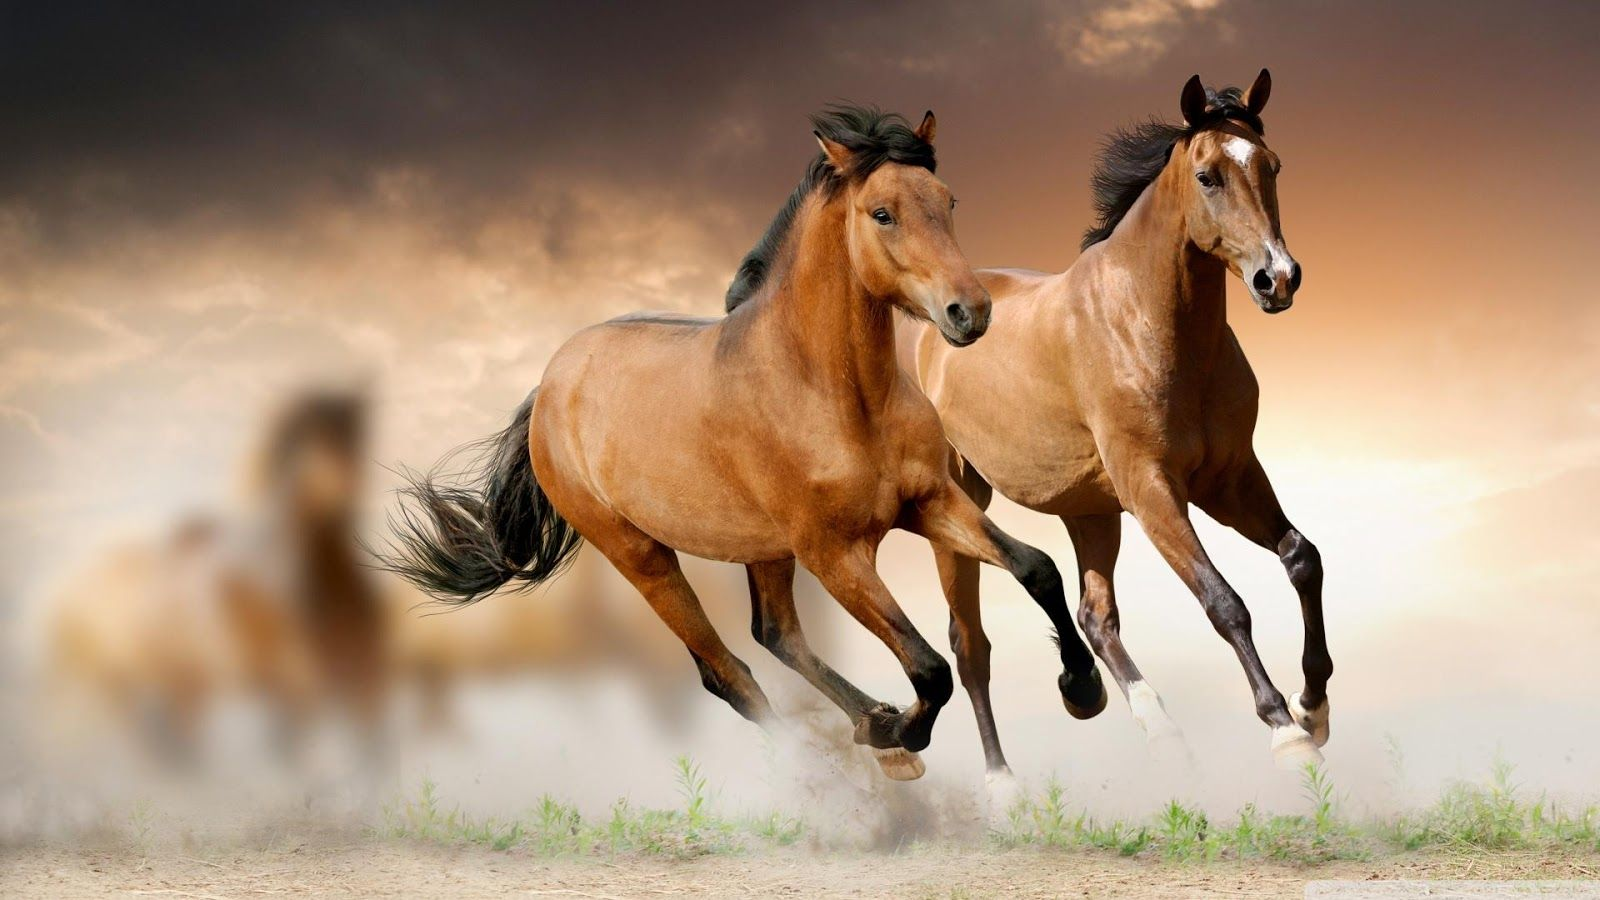 Must see Wallpaper Horse Android - 17099d4dfca72f938b4ca6c67a89a1dc  Gallery_71648.jpg